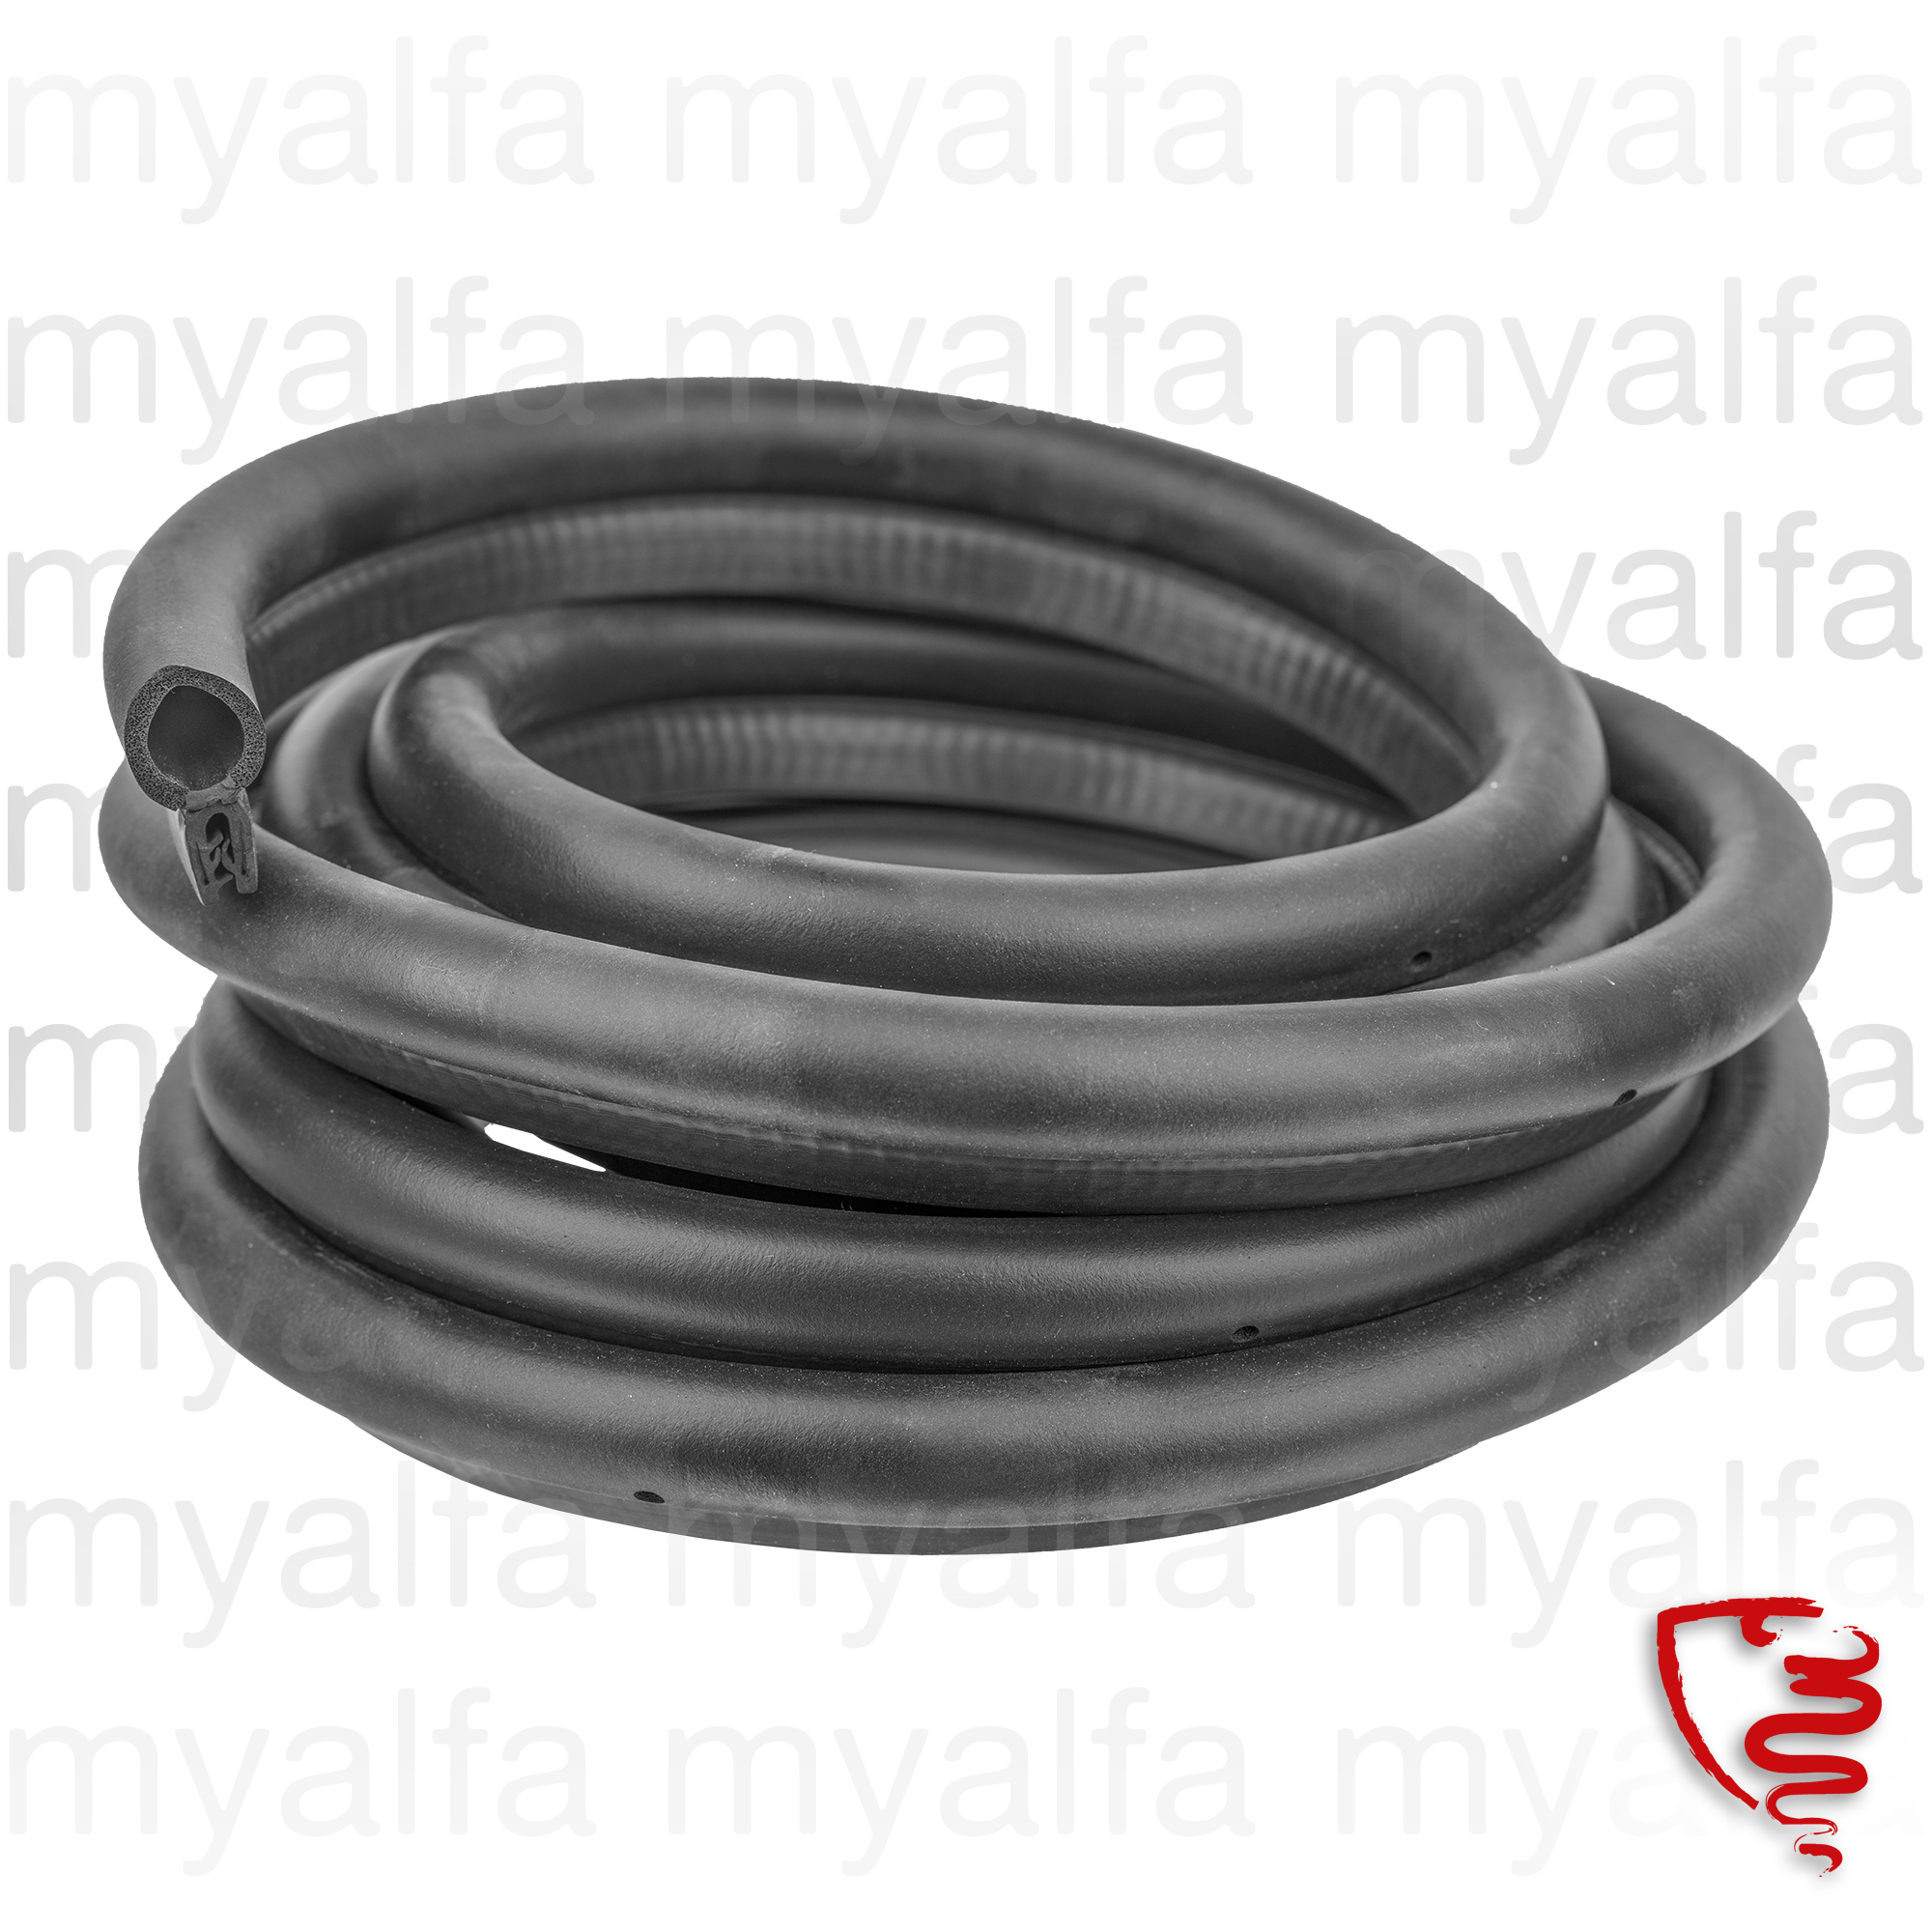 Sealing rubber boot GTV6 for 116/119, Body parts, Rubber parts, Body Seals/Grommets